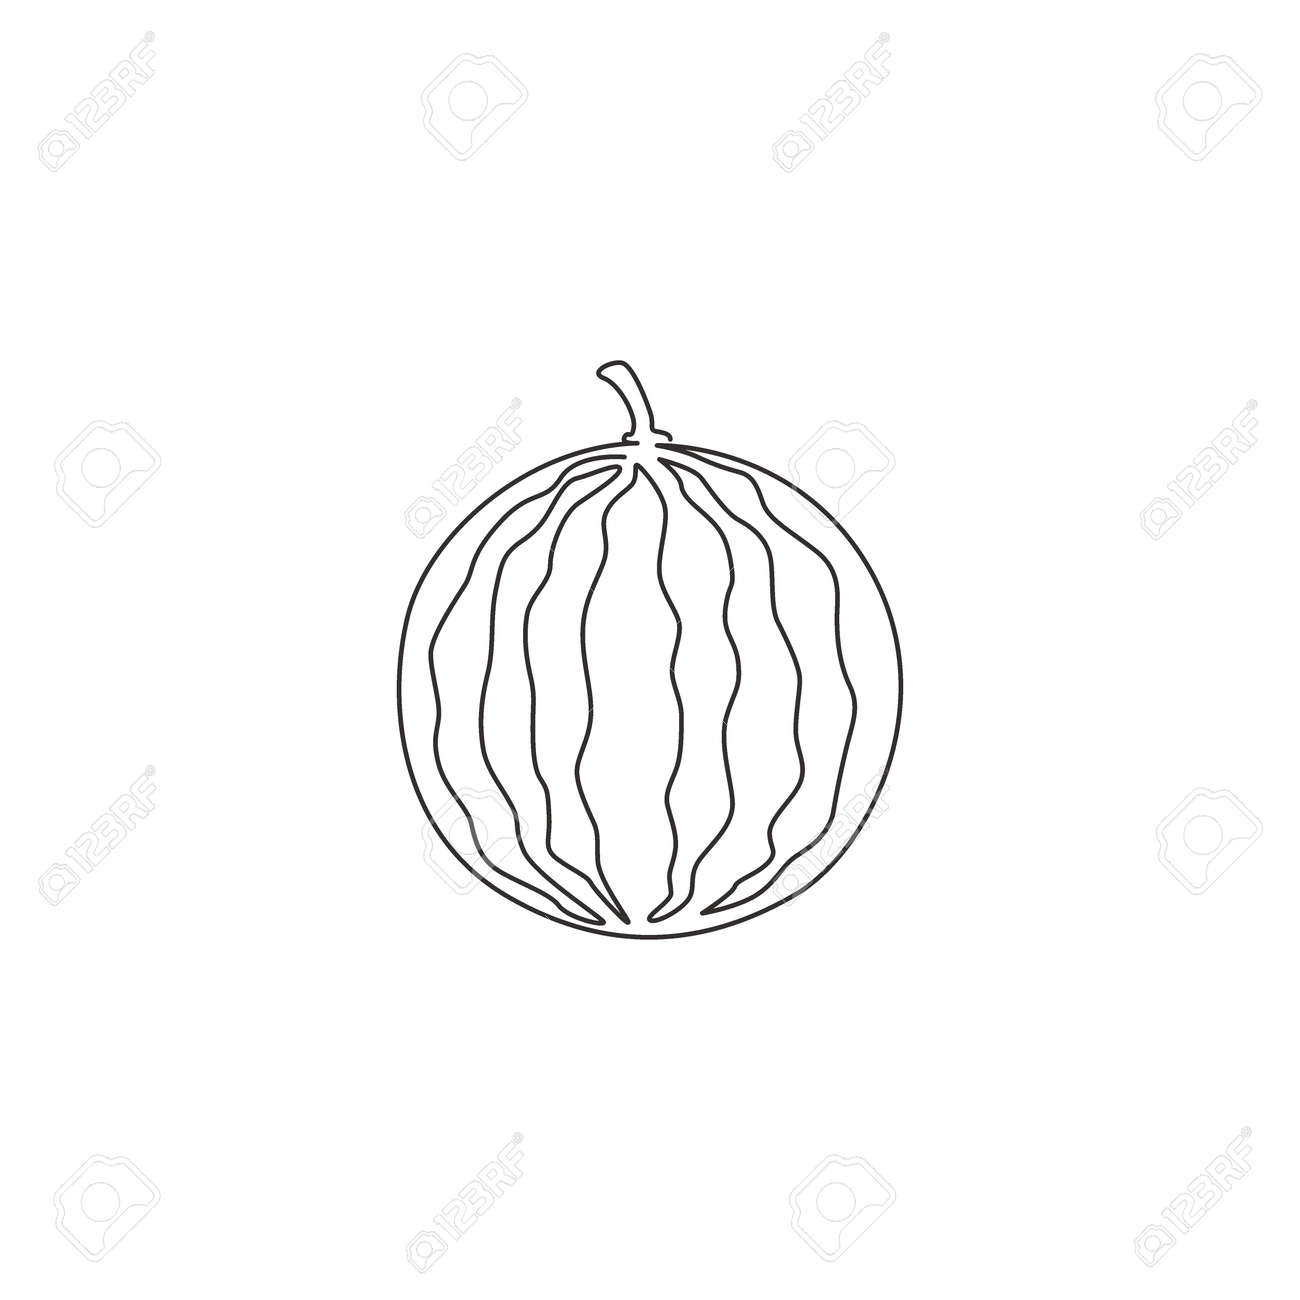 Single Continuous Line Drawing Of Whole Healthy Organic Watermelon Royalty Free Cliparts Vectors And Stock Illustration Image 155182853